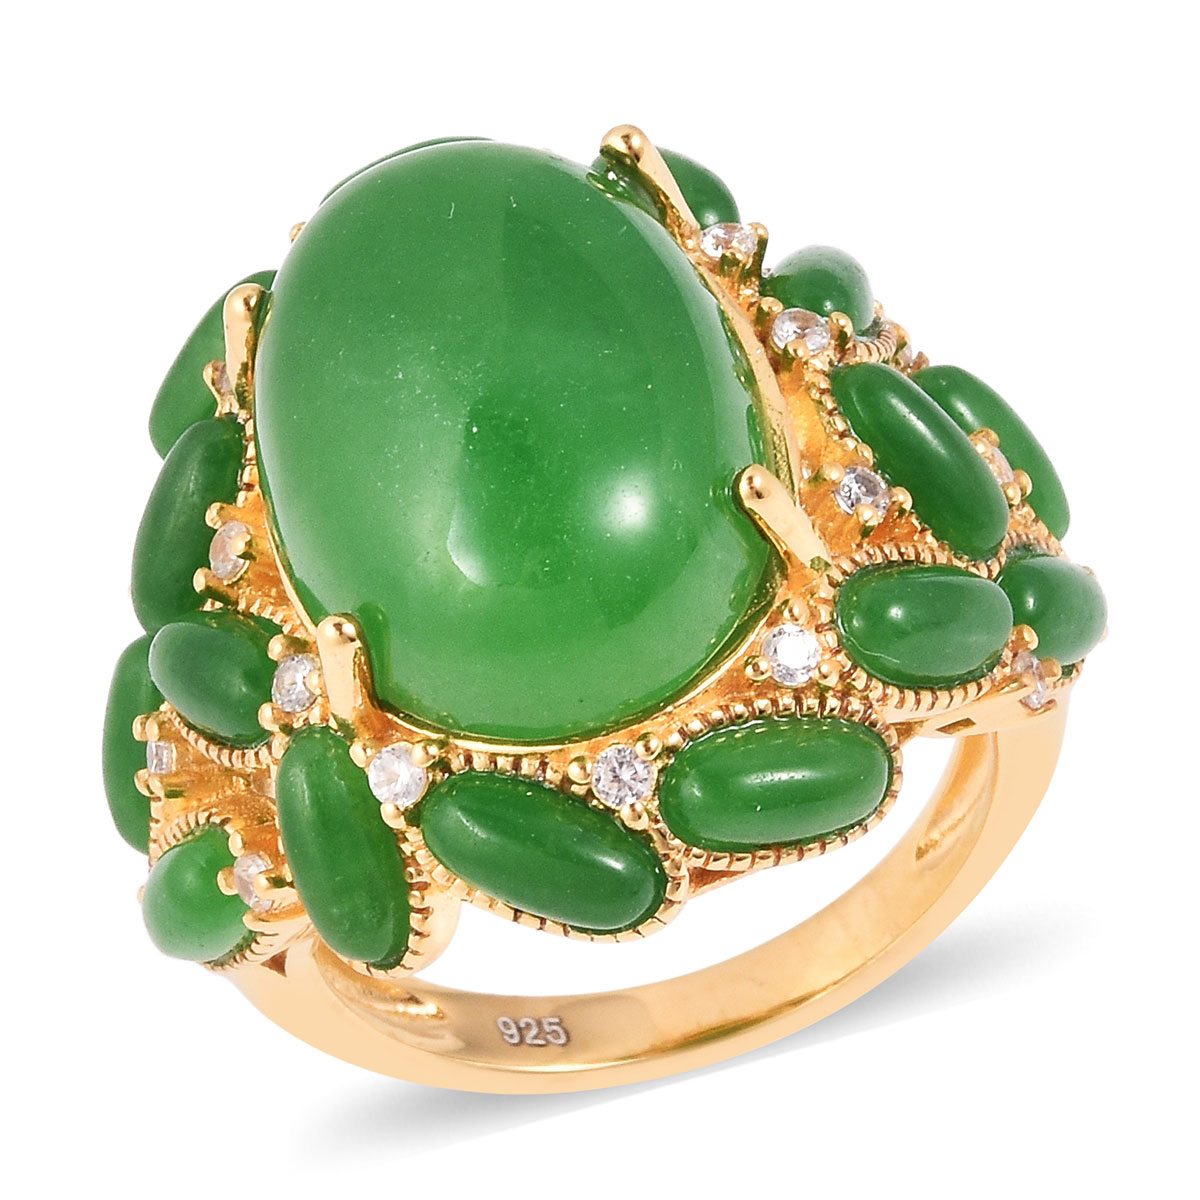 Burmese Green Jade, White Zircon Ring in Vermeil YG Over Sterling Silver (Size 8.0) 21.20 ctw